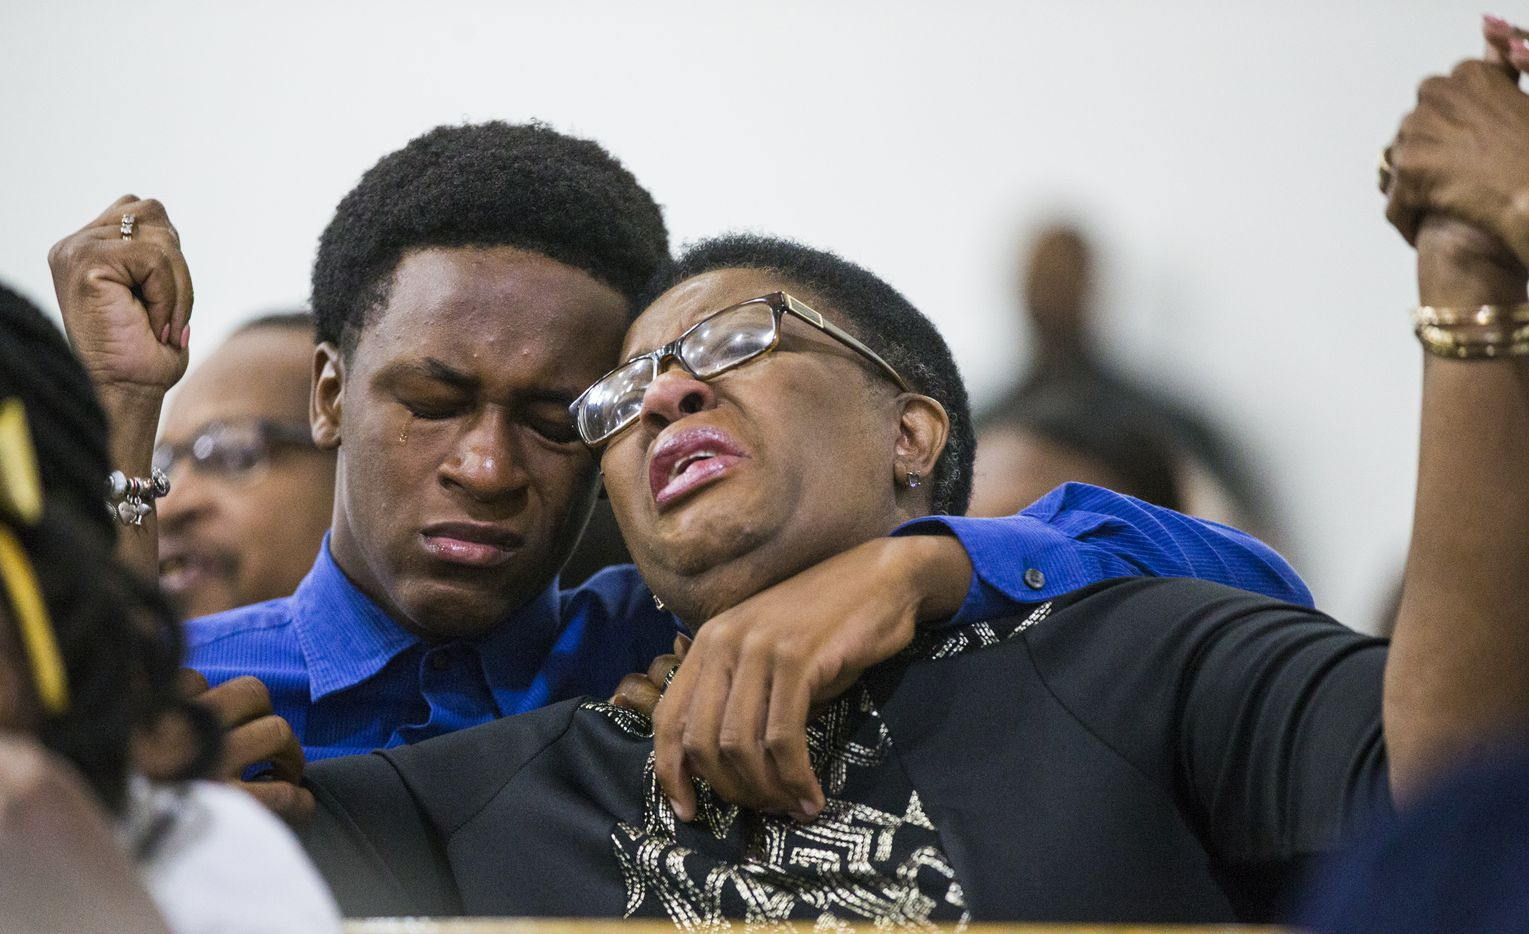 Allison Jean raises her hands in the air as she leans on her son, Brandt, 15, during a prayer service for her son and Brandt's brother Botham Shem Jean at the Dallas West Church of Christ on Sunday, September 9, 2018 in Dallas. Botham Shem Jean was shot and killed by Dallas police officer Amber Guyger in Jean's apartment on Thursday night.